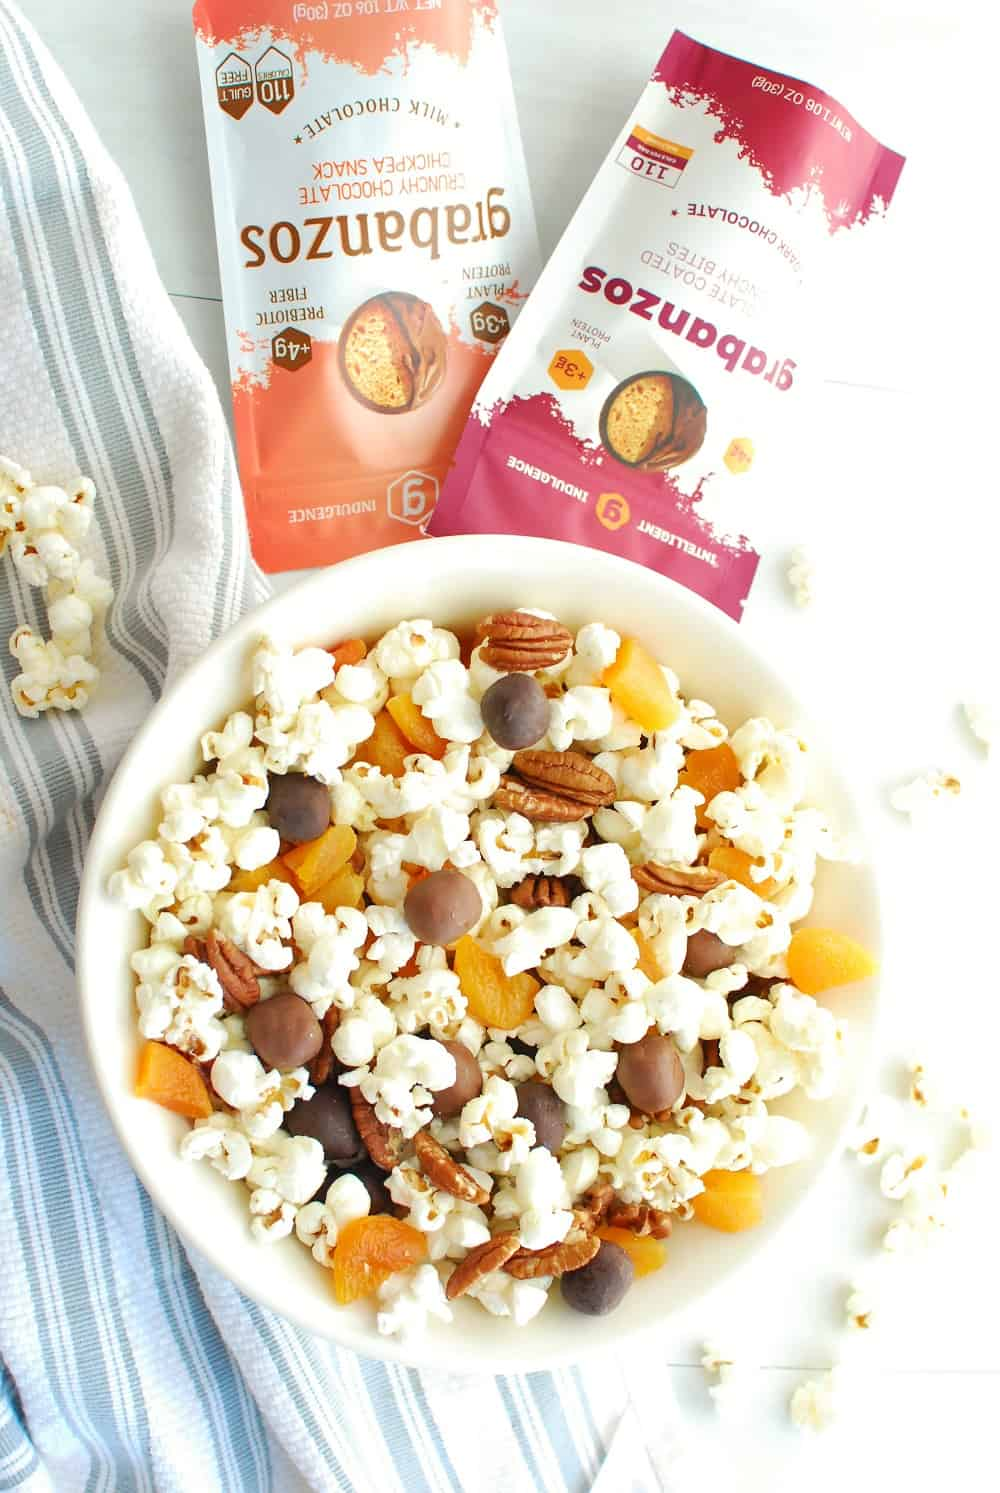 a big bowl of popcorn snack mix next to a napkin, some extra popcorn, and chocolate covered chickpeas